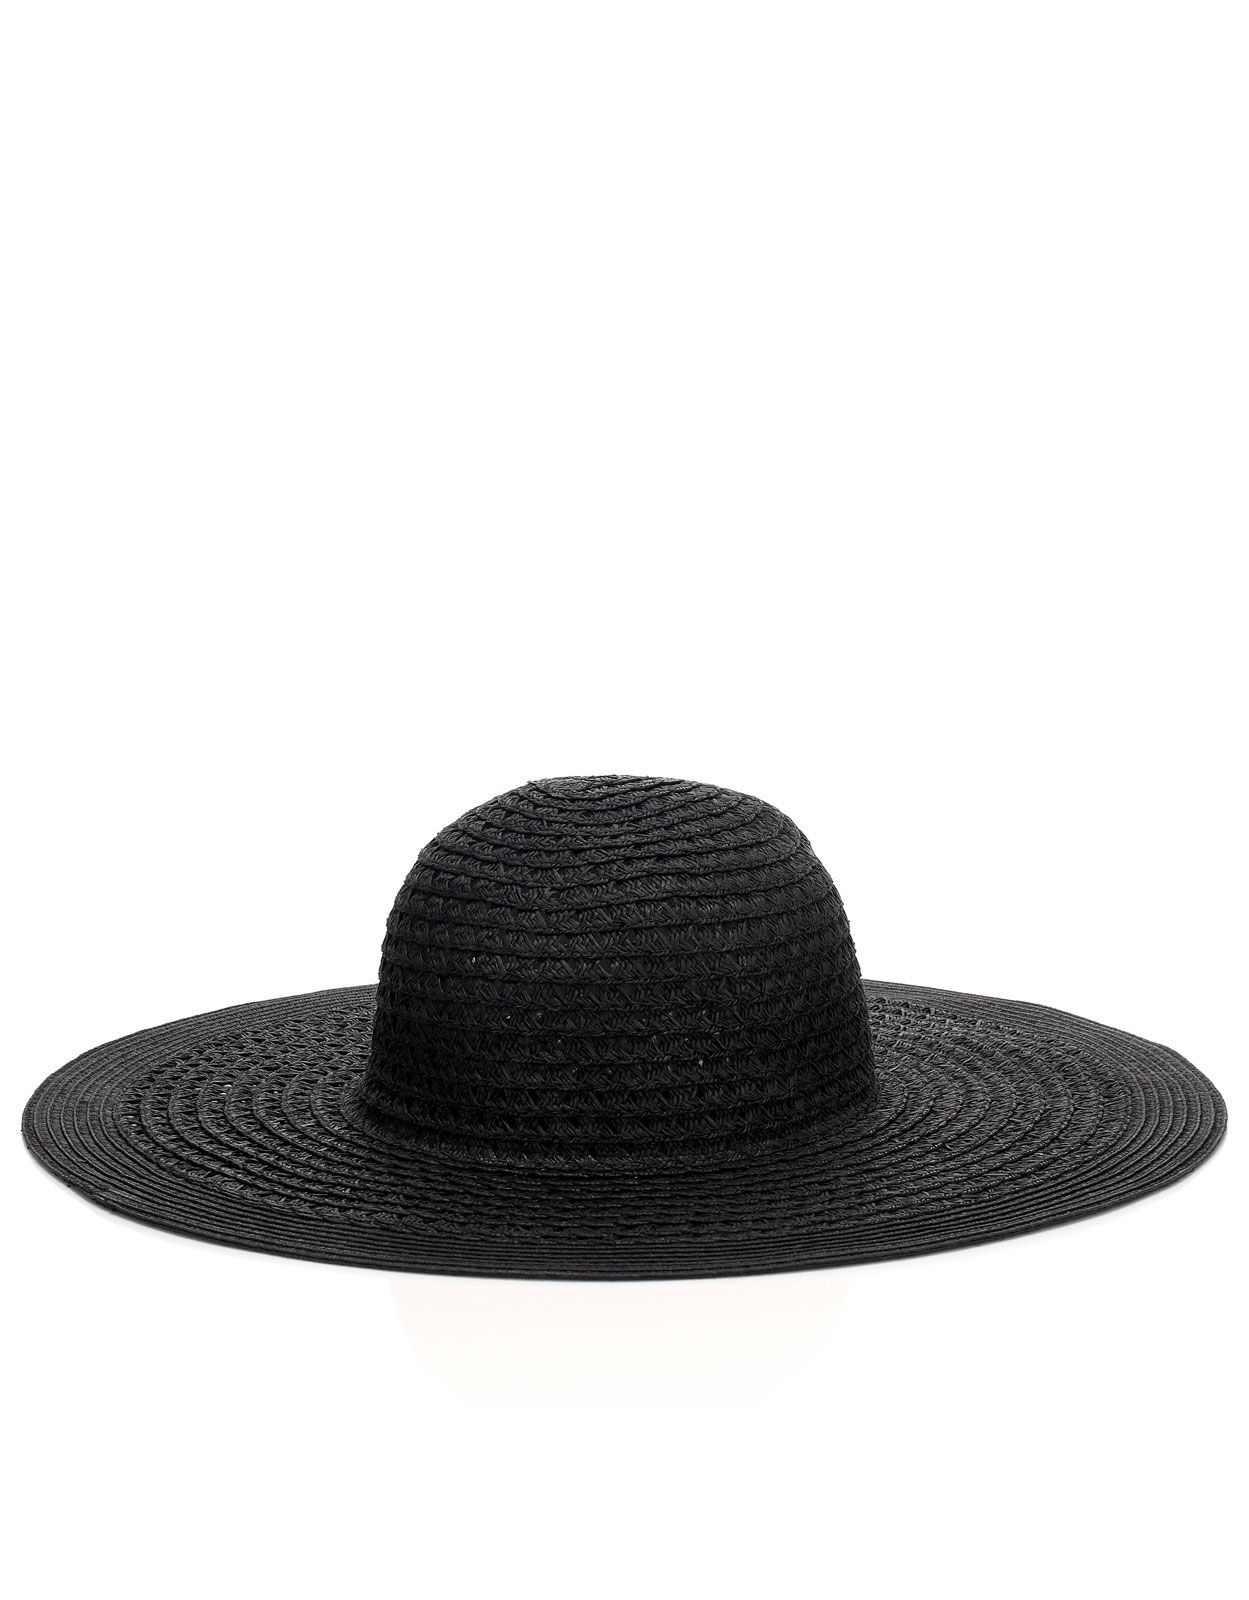 baea9d0d4517a8 Floppy Hat #monsoon #essentials #summer2014 #holiday2014 #summer #packing  #holiday #pintowin #accessorize #competition #fashion #style #summerstyle  #beach ...